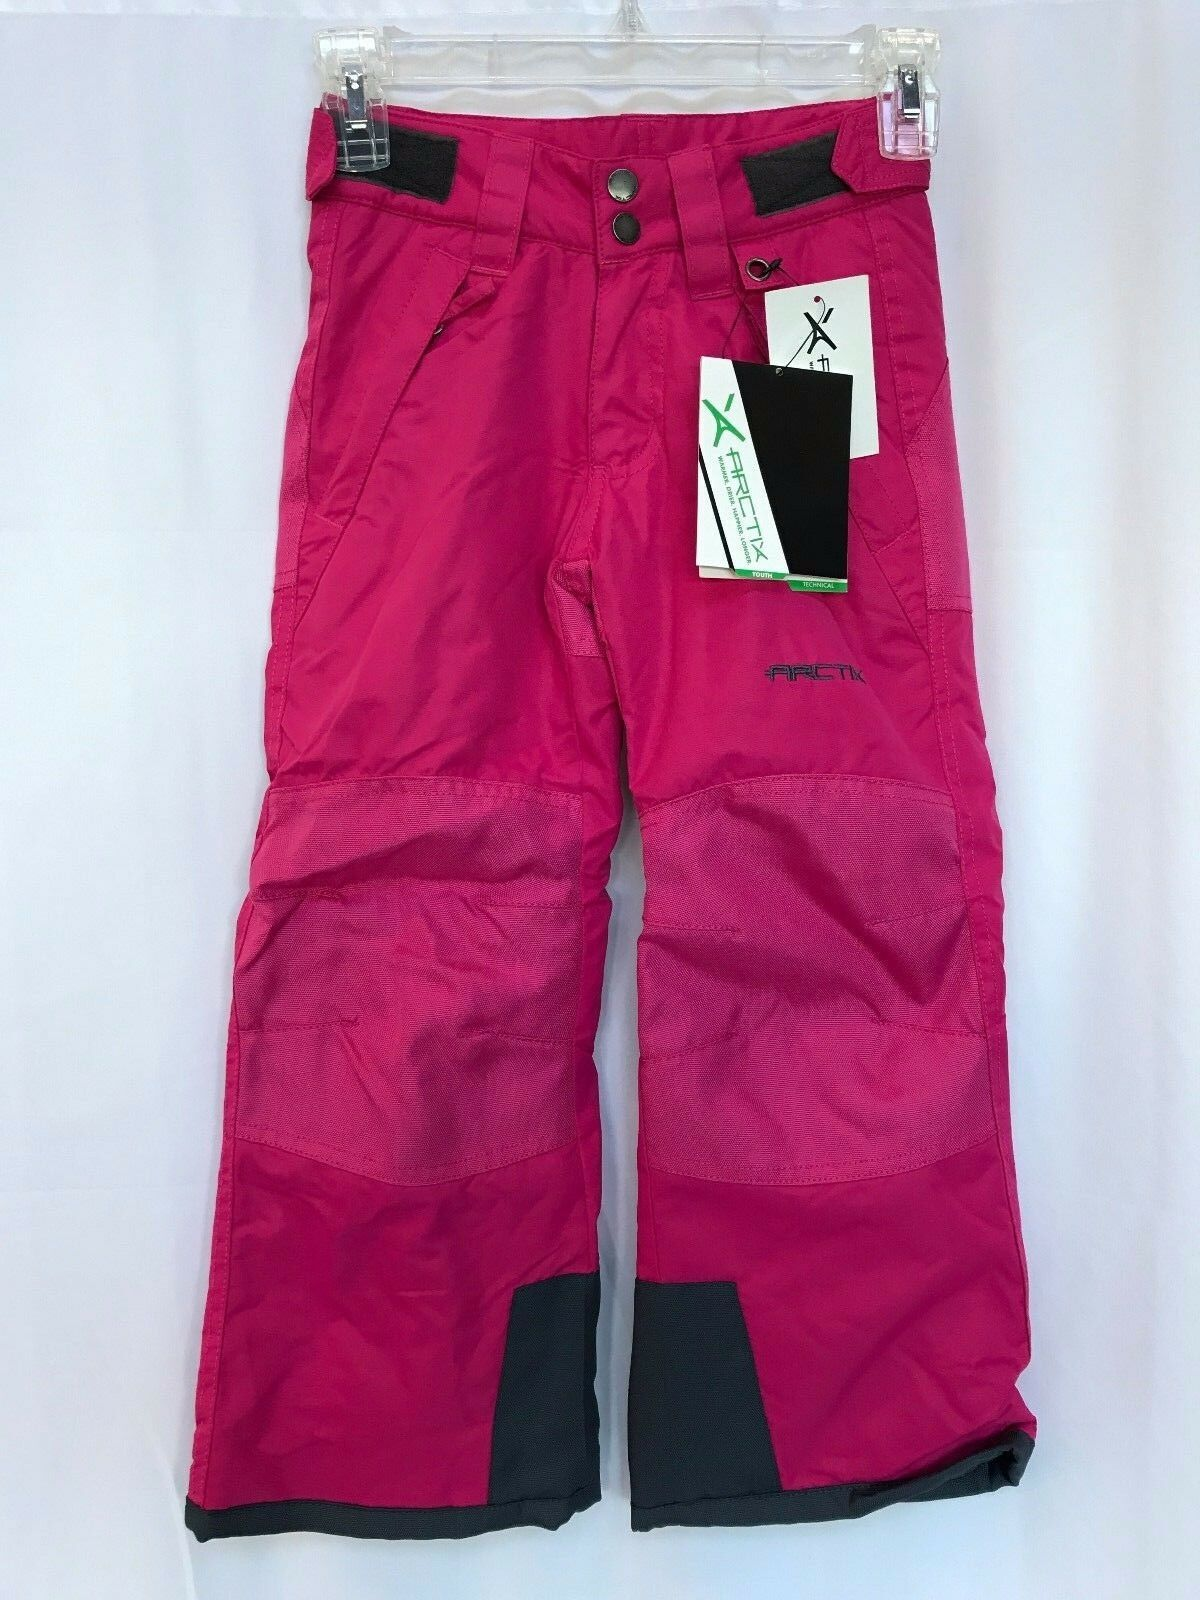 Arctix Youth Girls Reinforced Insulated Water-Resistant Snow